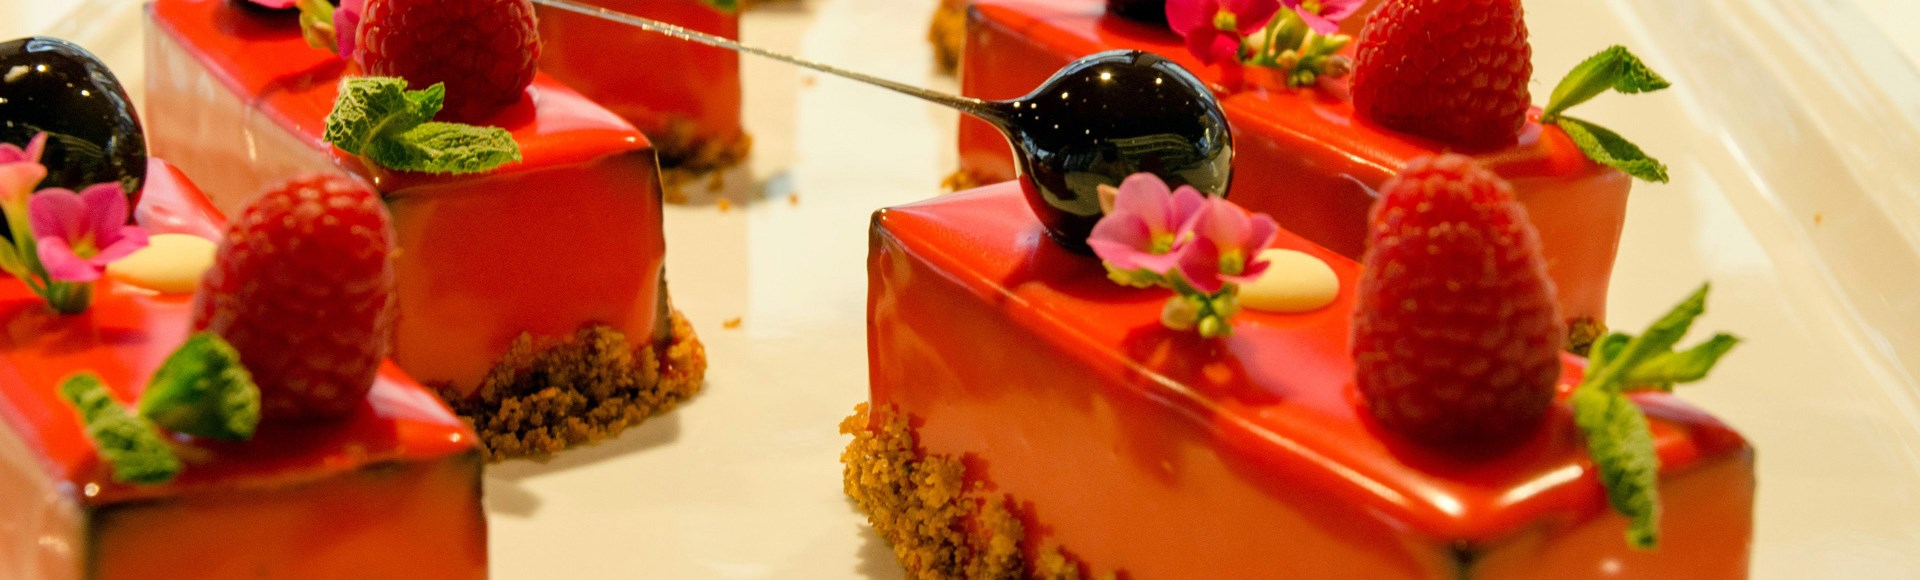 caraive-pave-chocoloate-mousse-with-raspberries-and-crispy-praline-base - Alargo Private Chef Services | Corfu Island - Greece